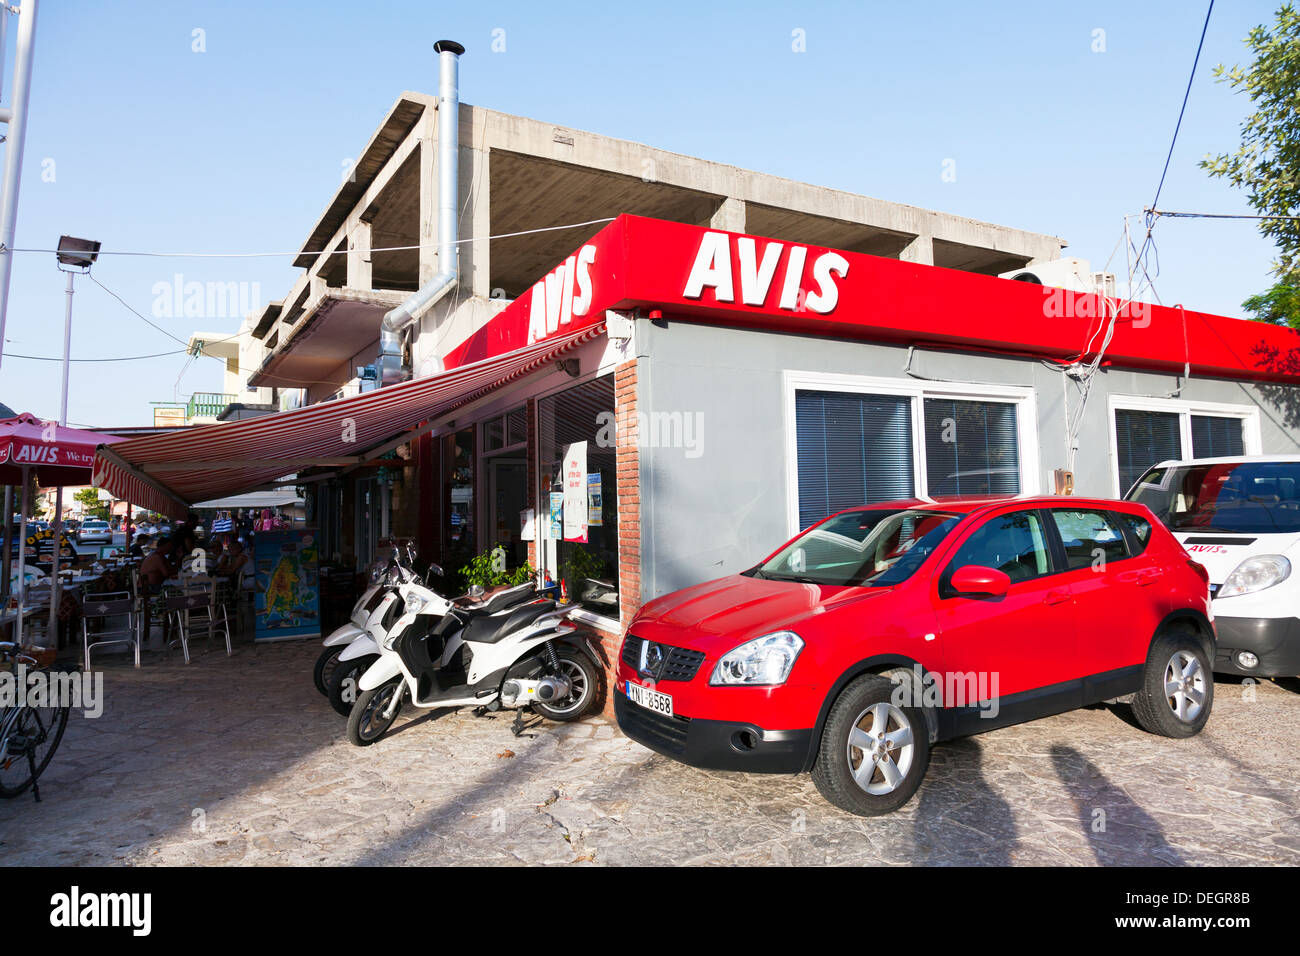 I've had bad experiences with practically all rental companies in Italy: Europcar, Hertz, Avis, Sixt, you name it. I've had also bad experiences with Avis and National in the US, although not as frequently as in Italy where I almost never come home happy.